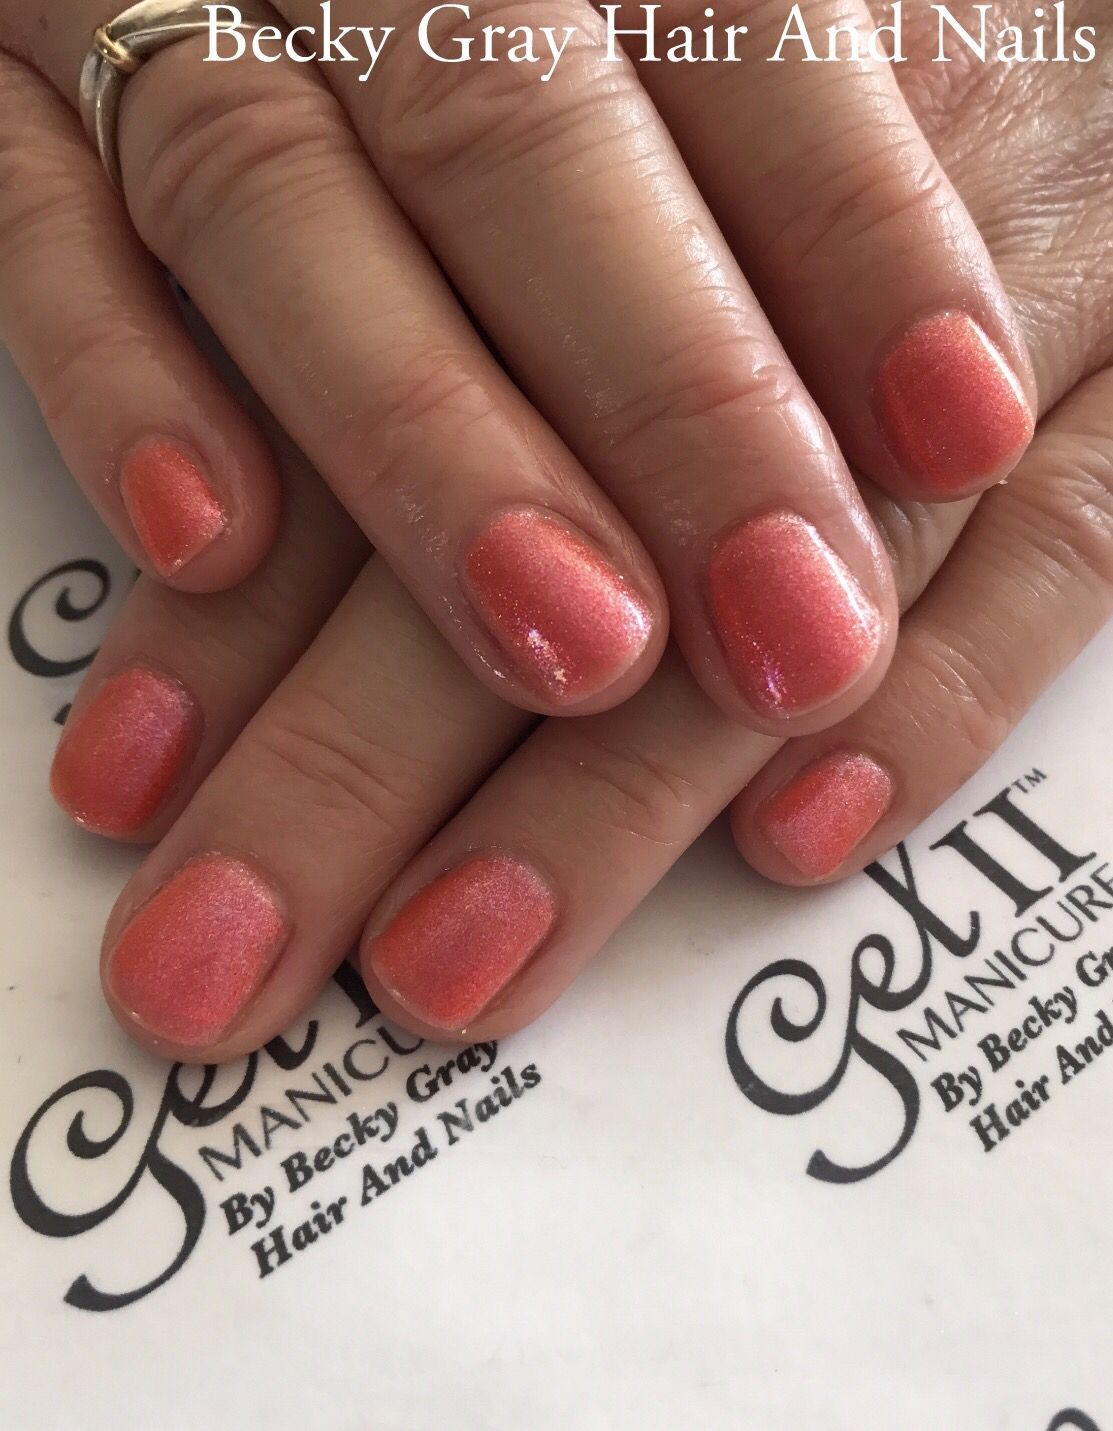 #gelii #manicure tan lines #gel_two #nails #showscratch #scratchmagazine